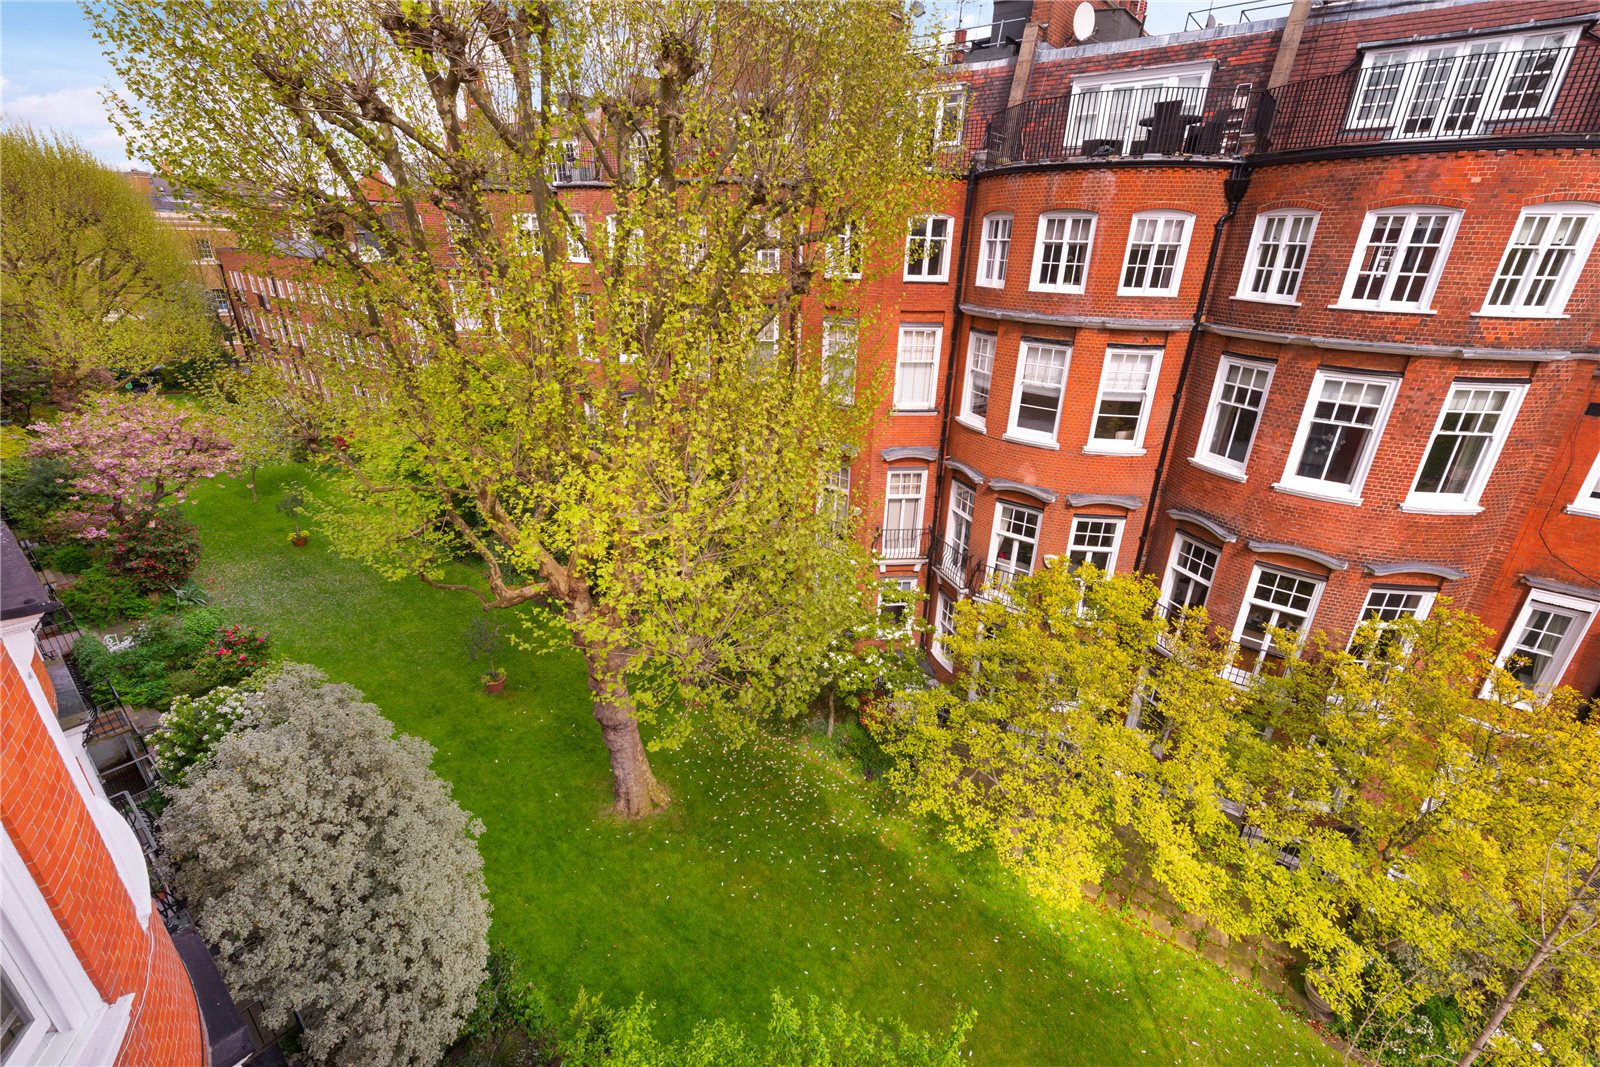 Apartments / Residences for Sale at Sloane Court West, London, SW3 London, England